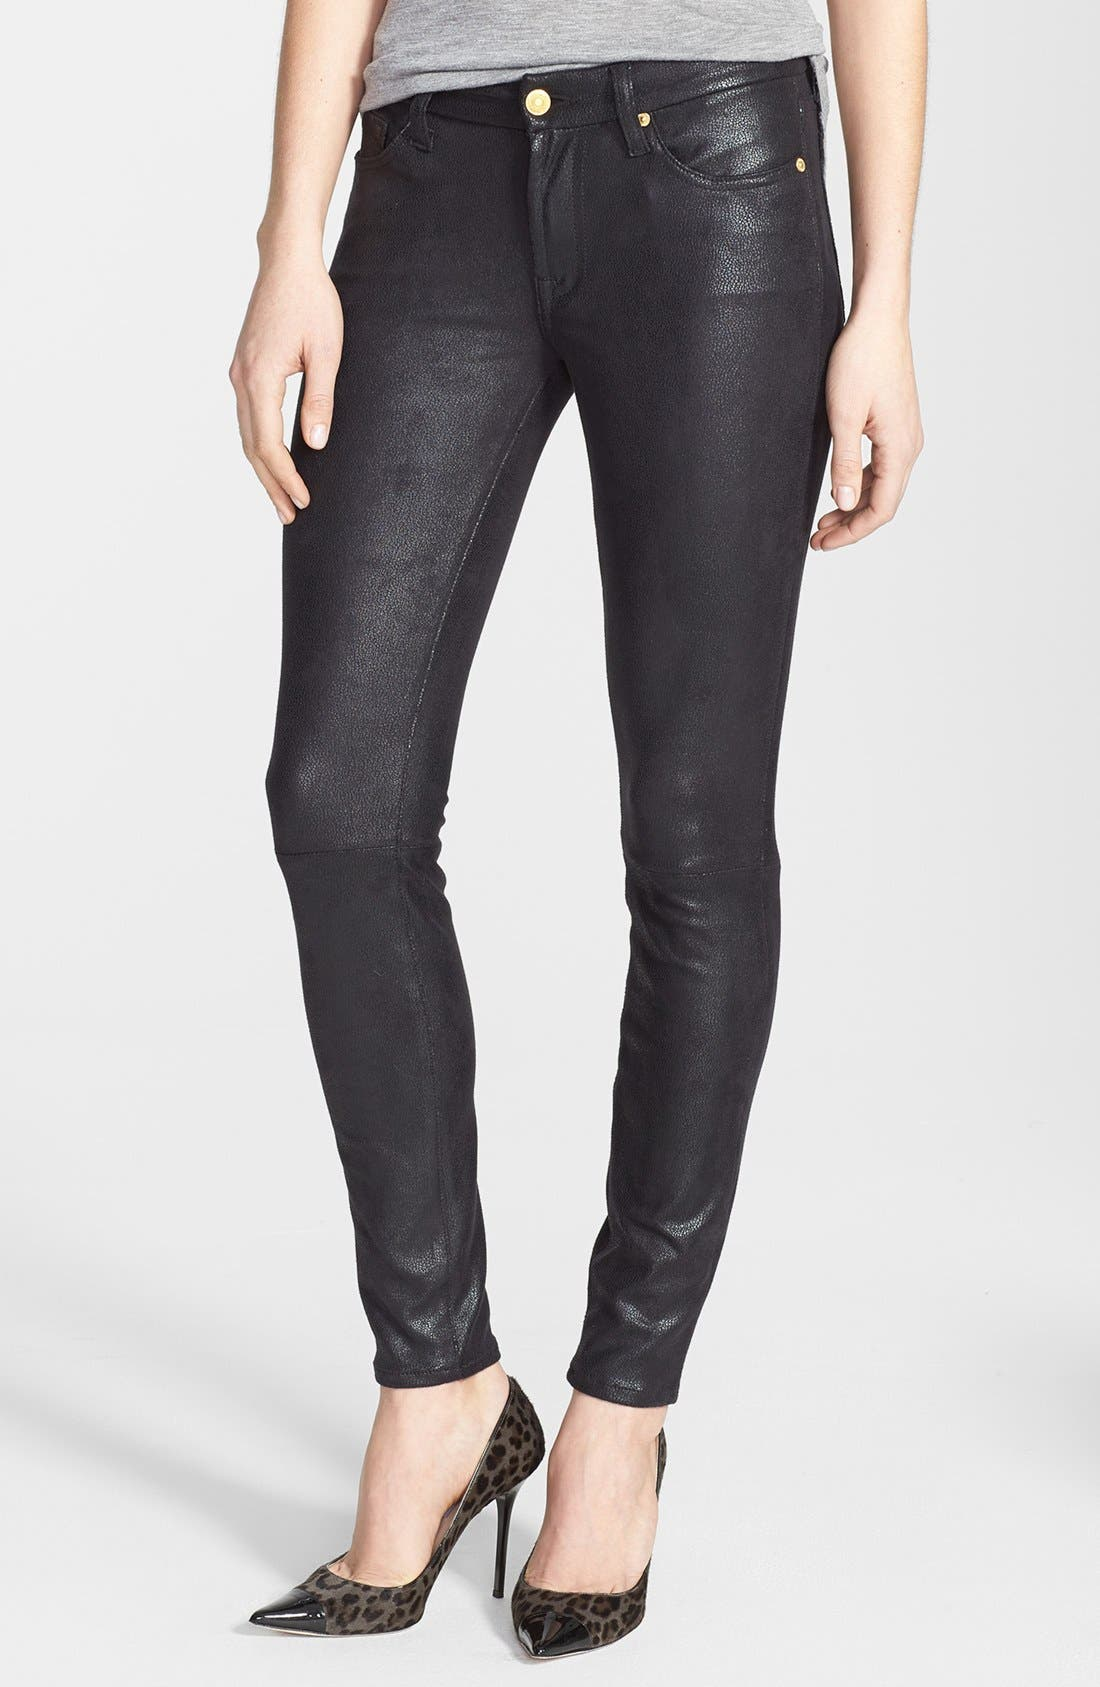 Alternate Image 1 Selected - 7 For All Mankind® 'The Skinny' High Rise Faux Leather Skinny Pants (Black)